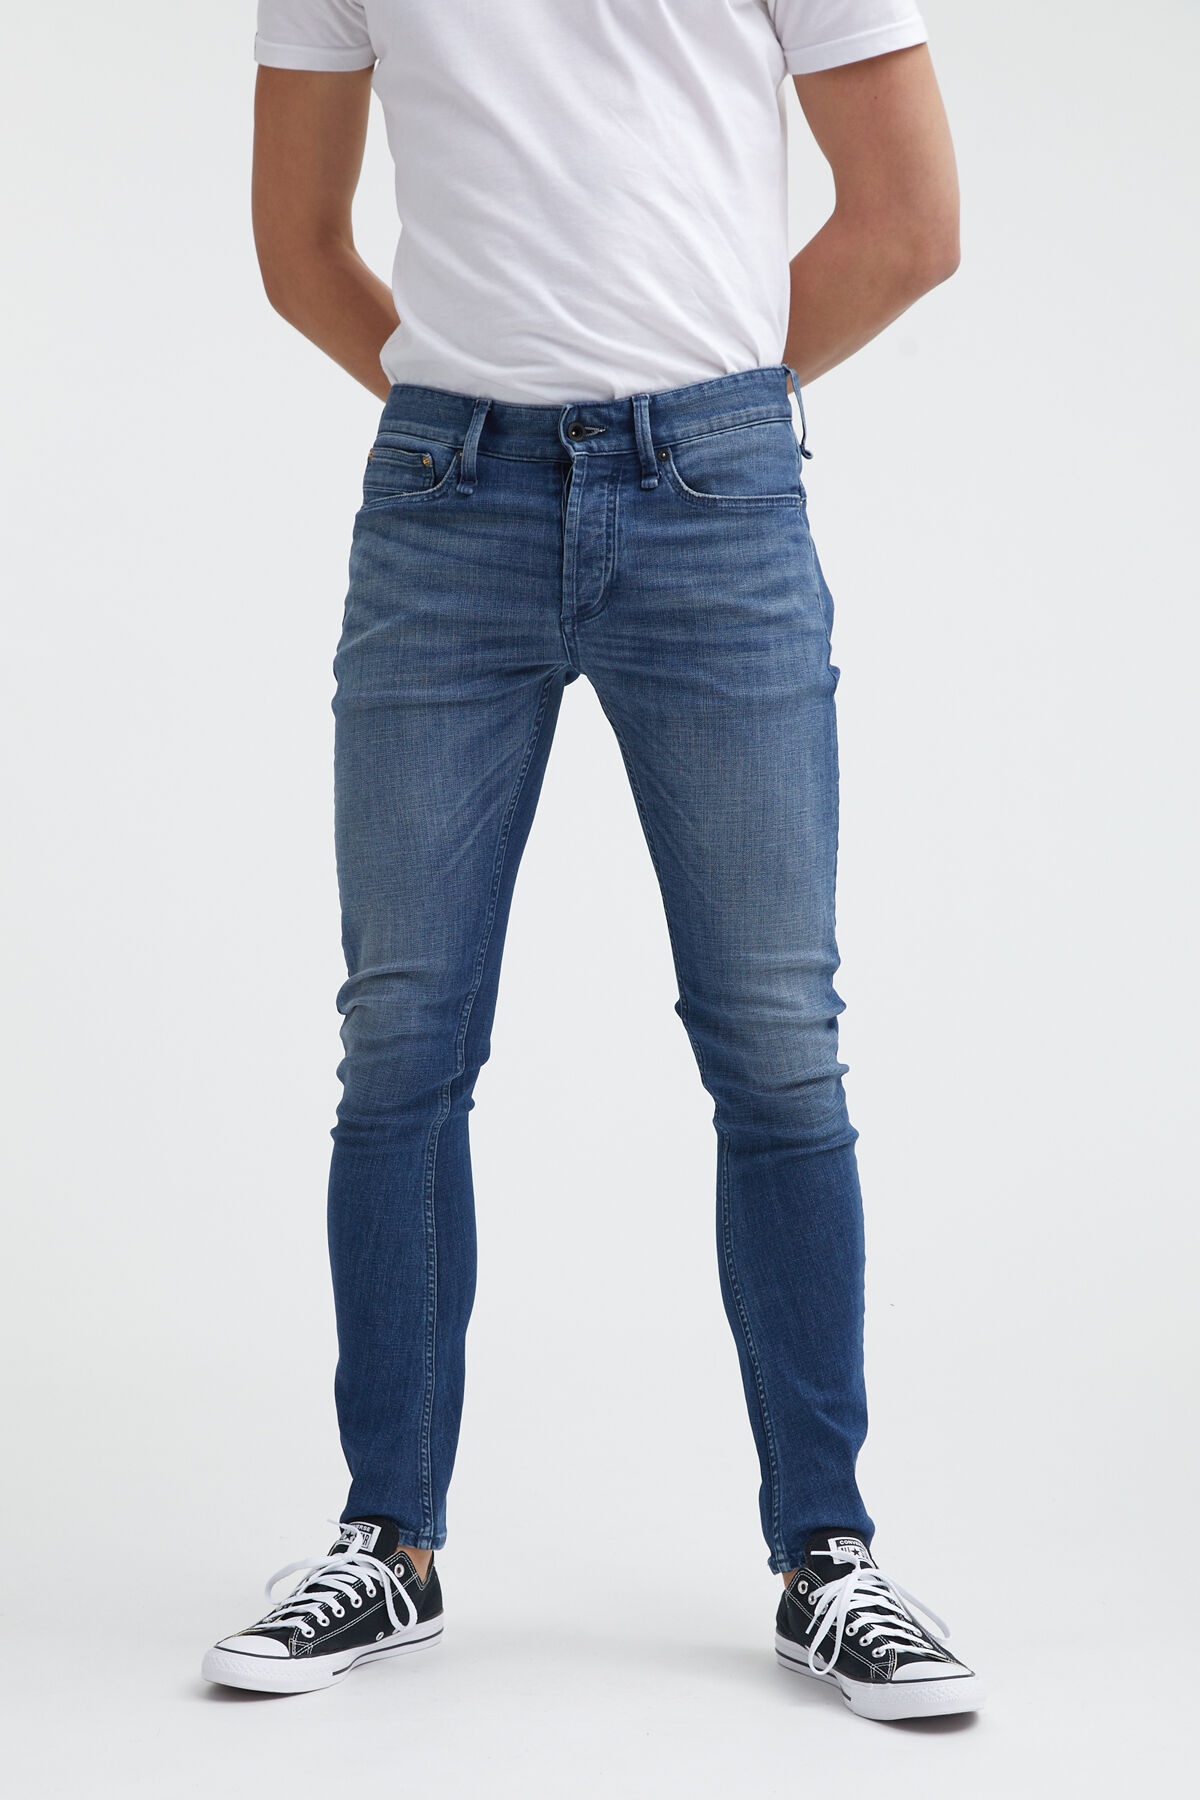 BOLT WELT Indigo Cast Denim - Skinny Fit